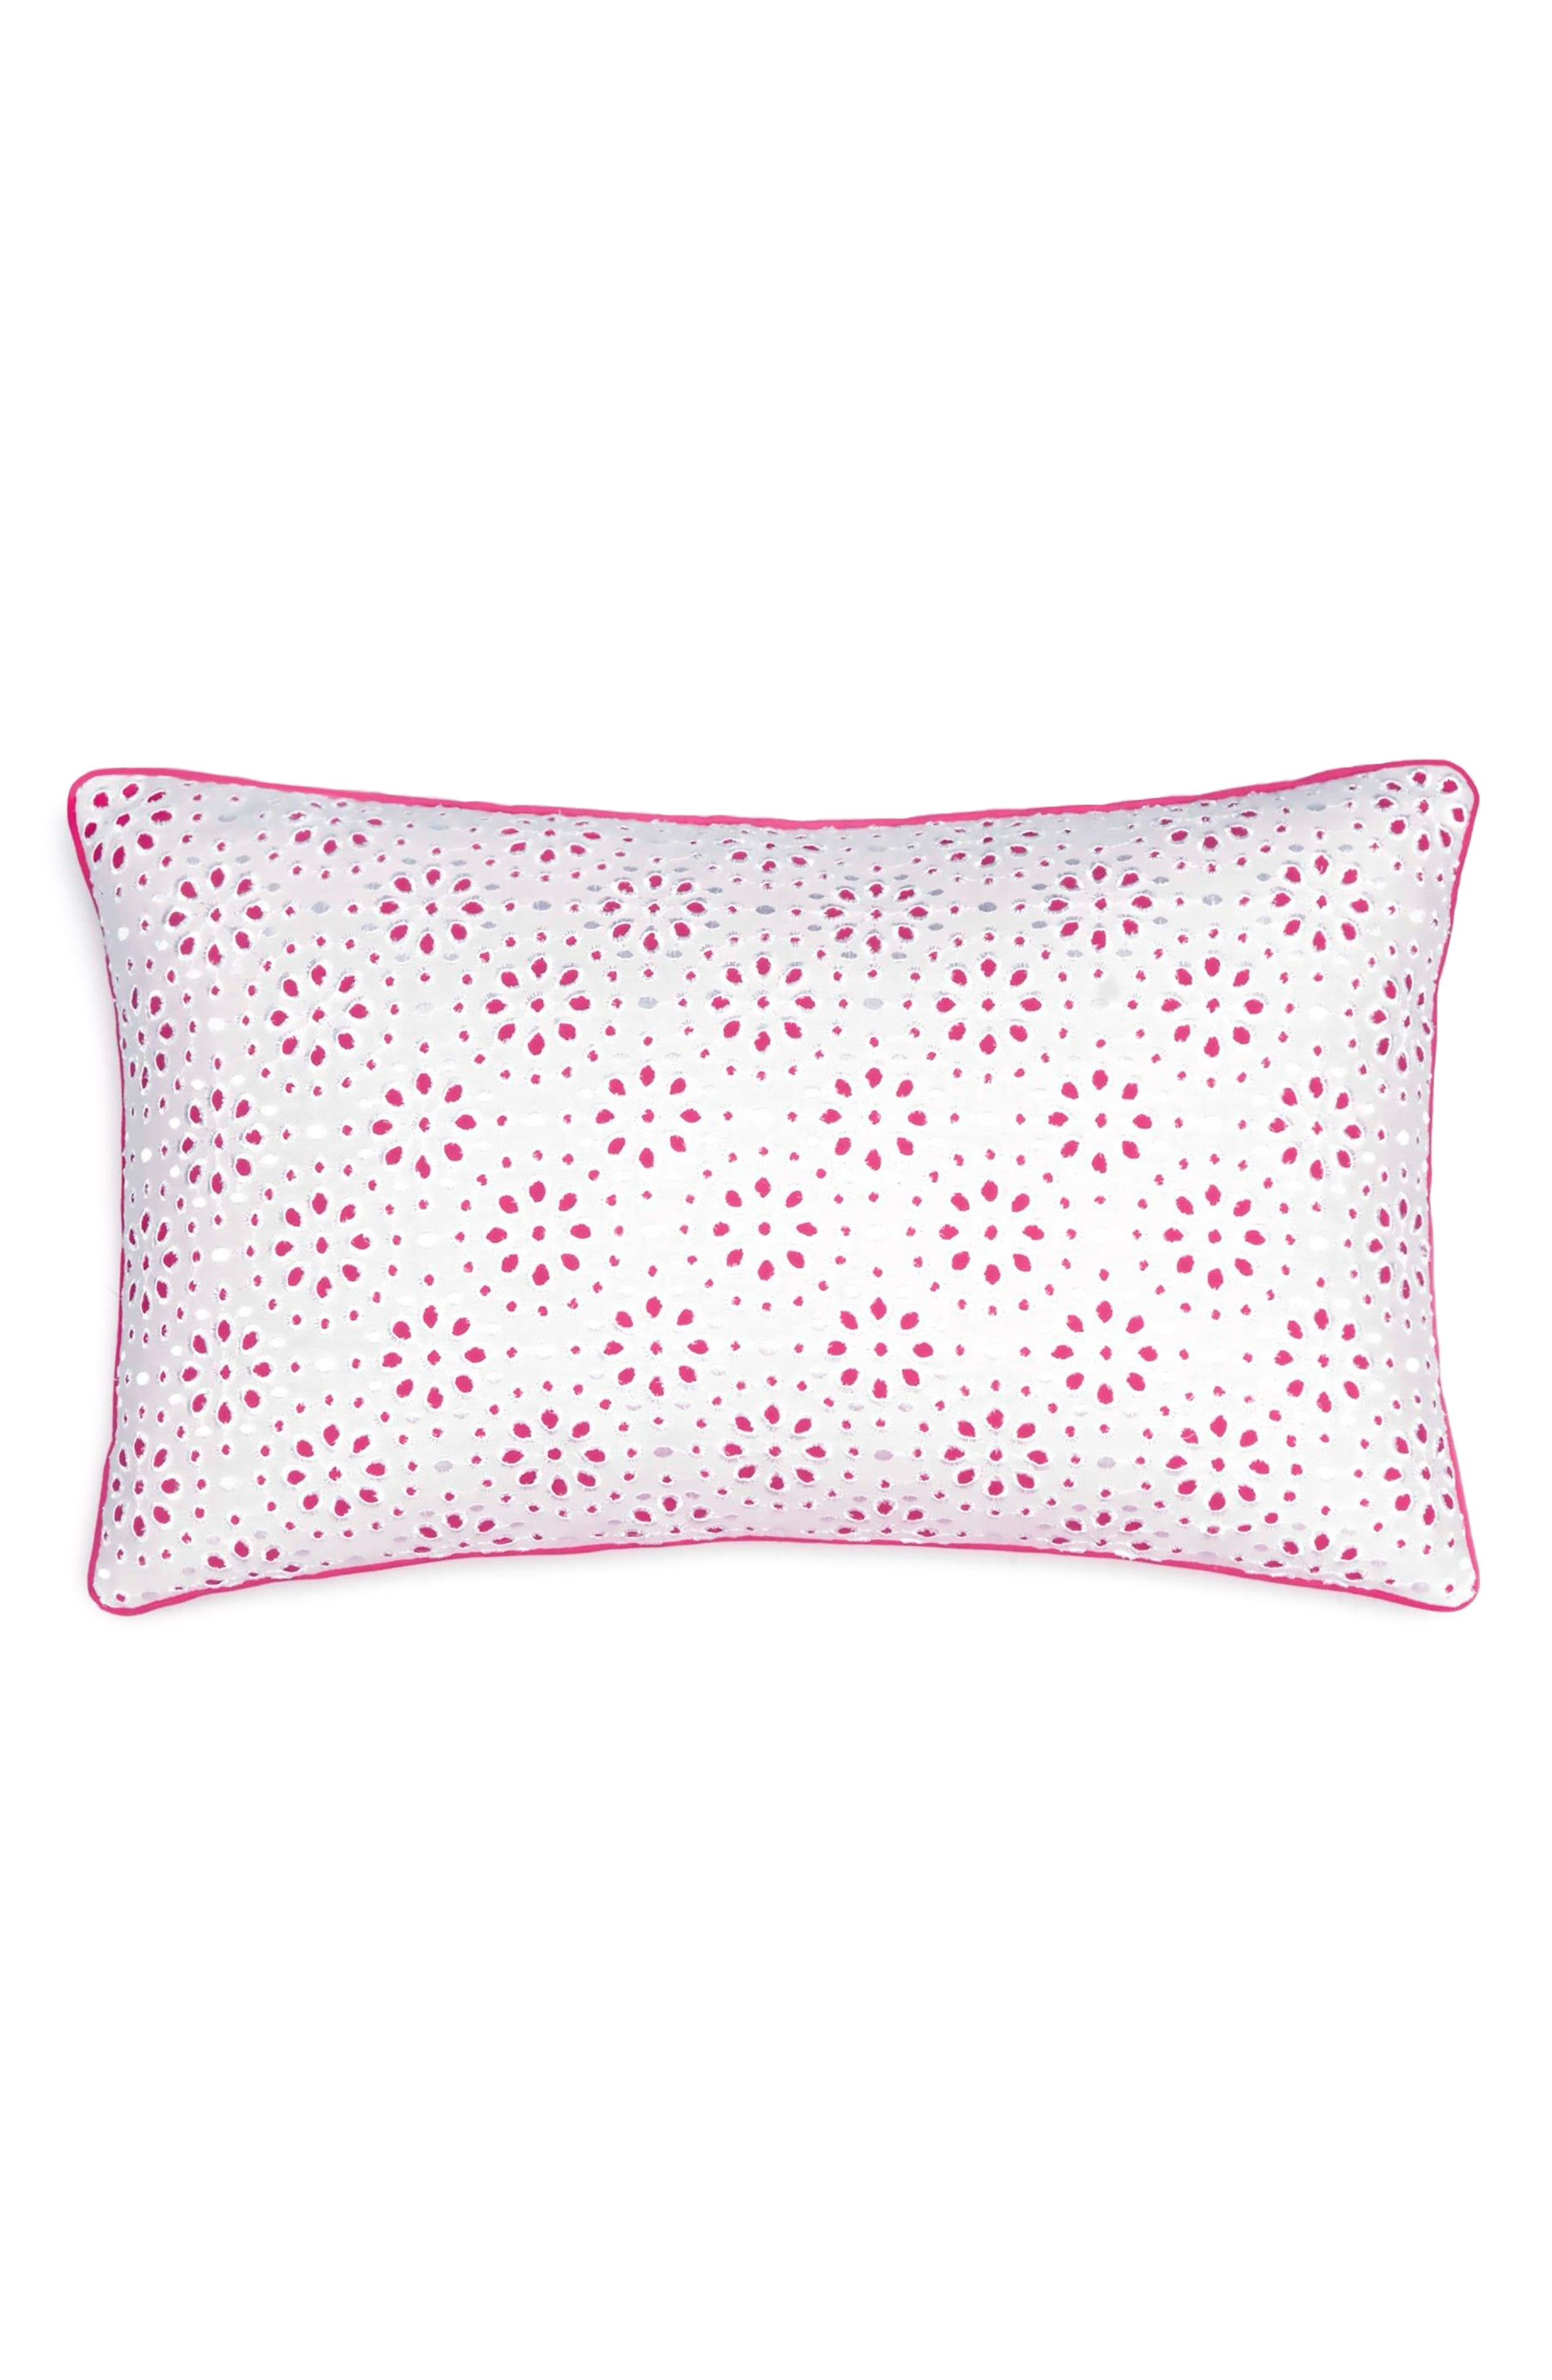 Main Image - Southern Tide Floral Eyelet Pillow